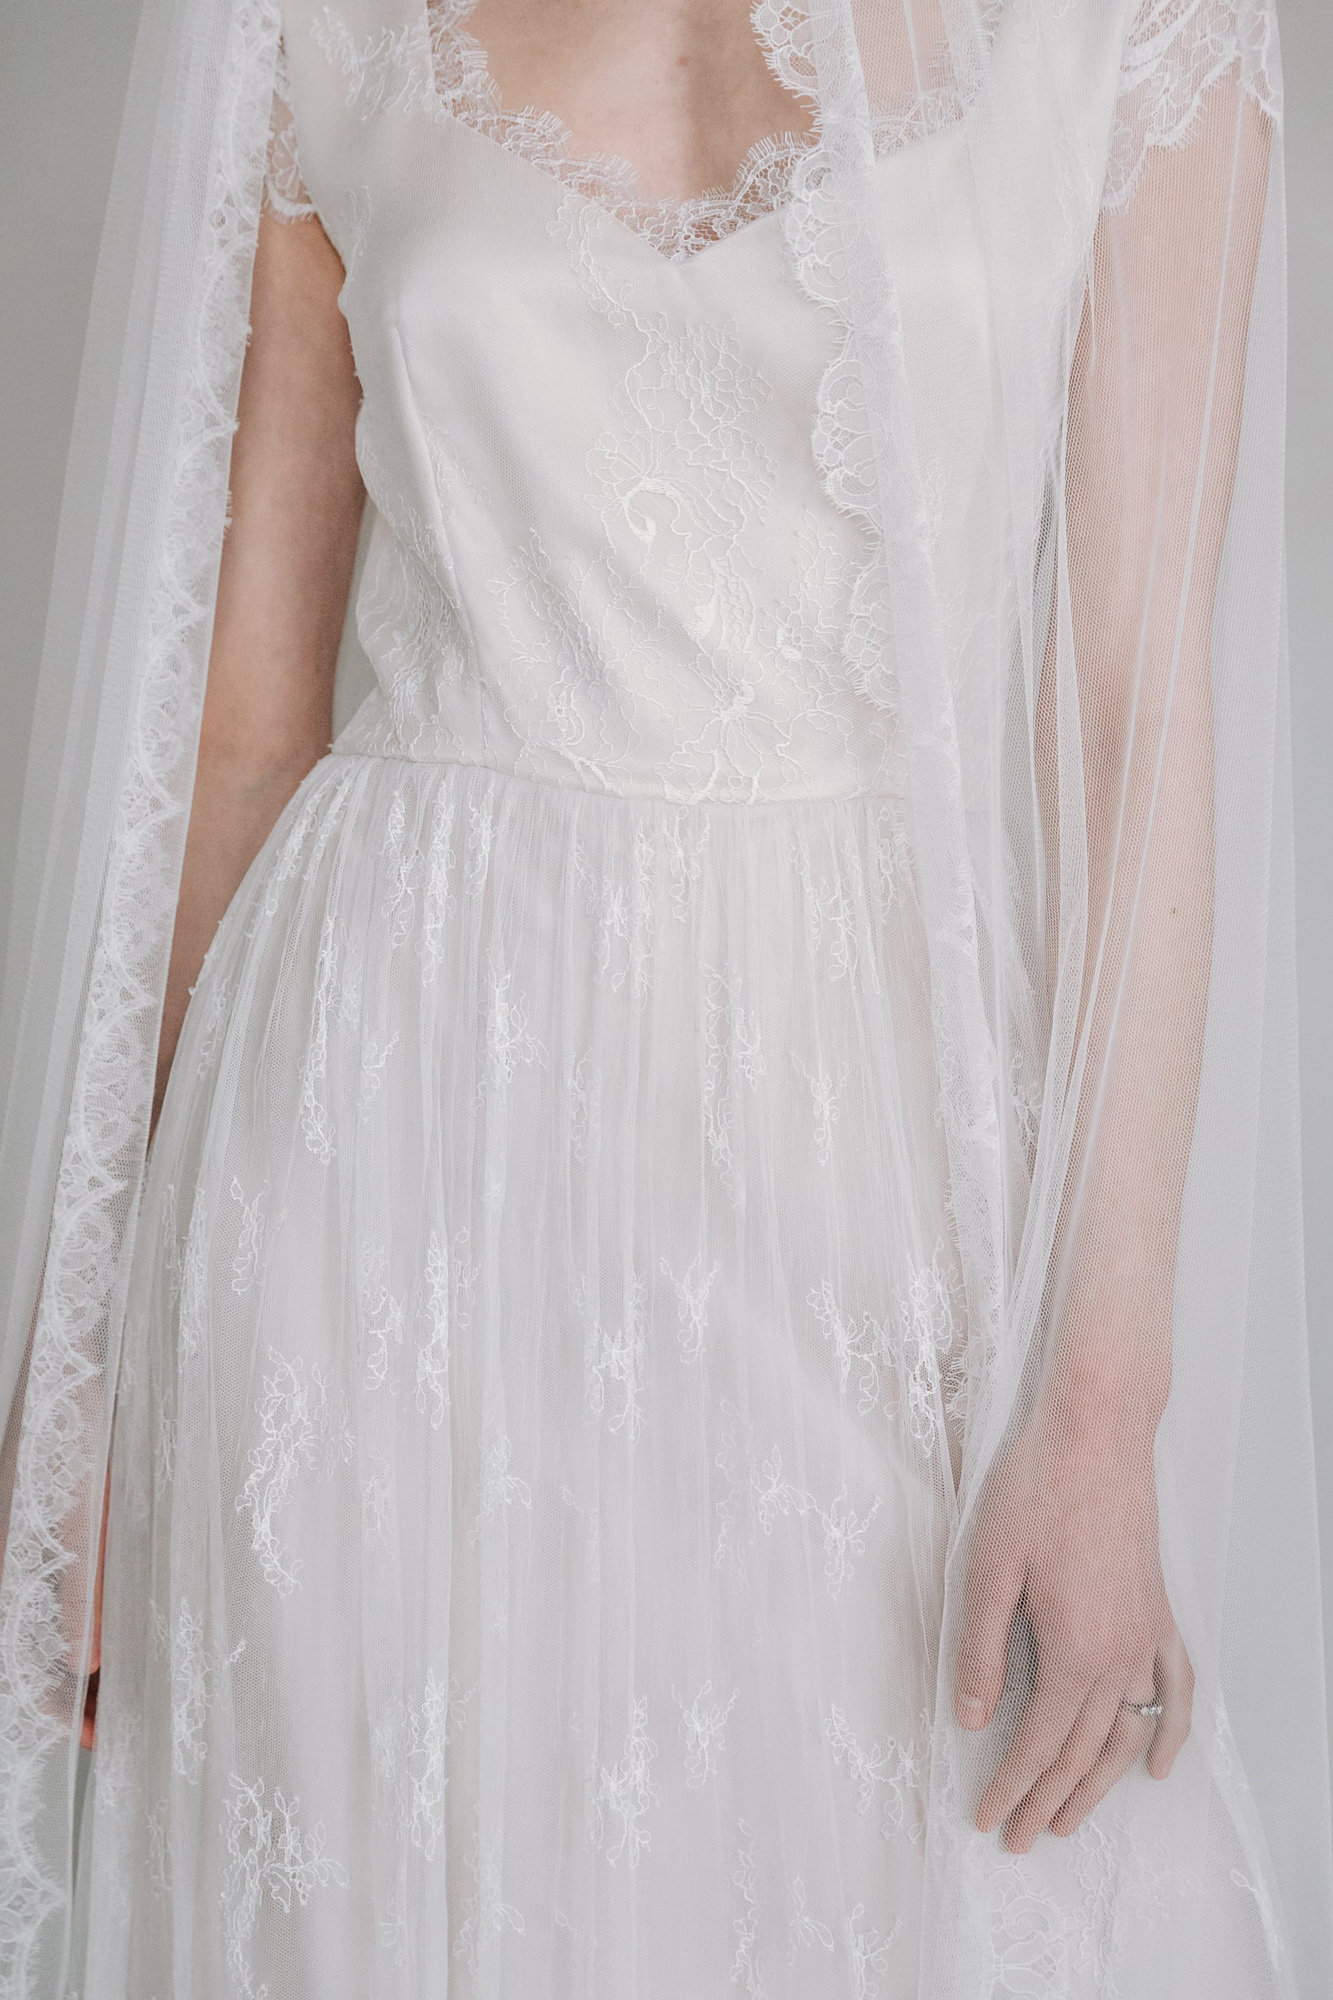 Kate-Beaumont-Sheffield-Hollyhock-Delicate-Ethereal-French-Lace-Blush-Silk-Wedding-Gown-1.jpg